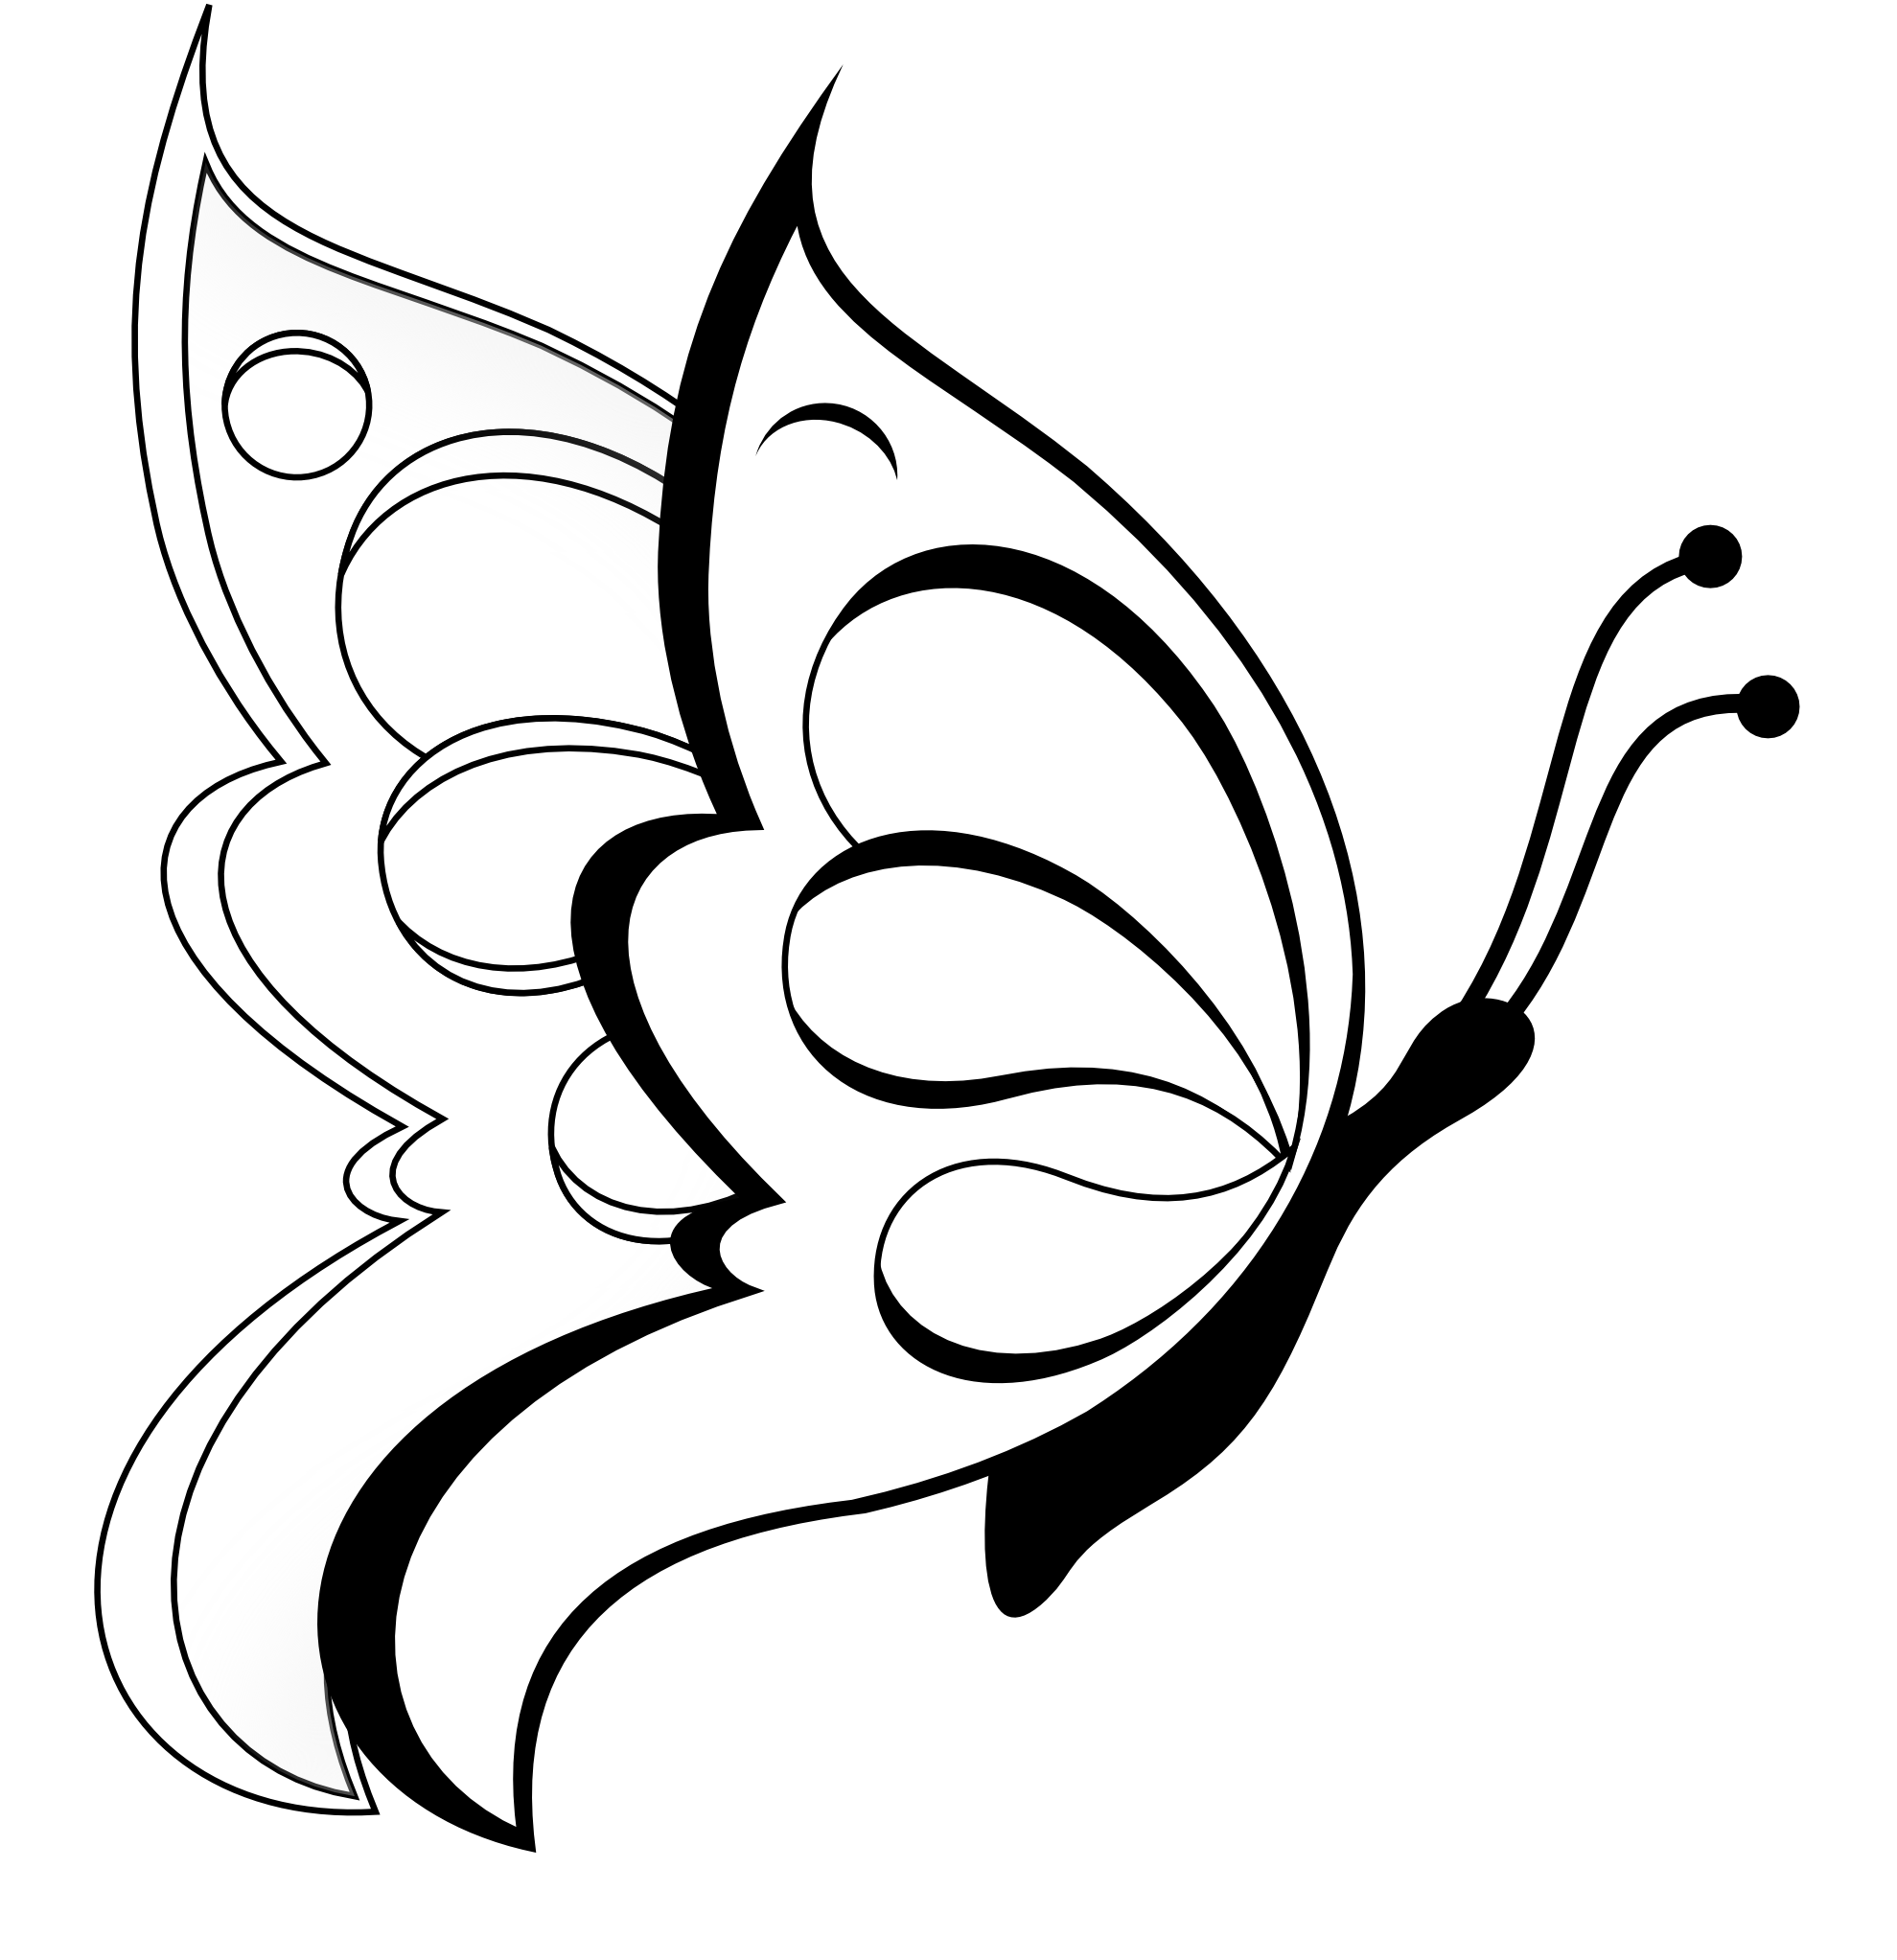 Rose clipart easy. Butterfly black and white